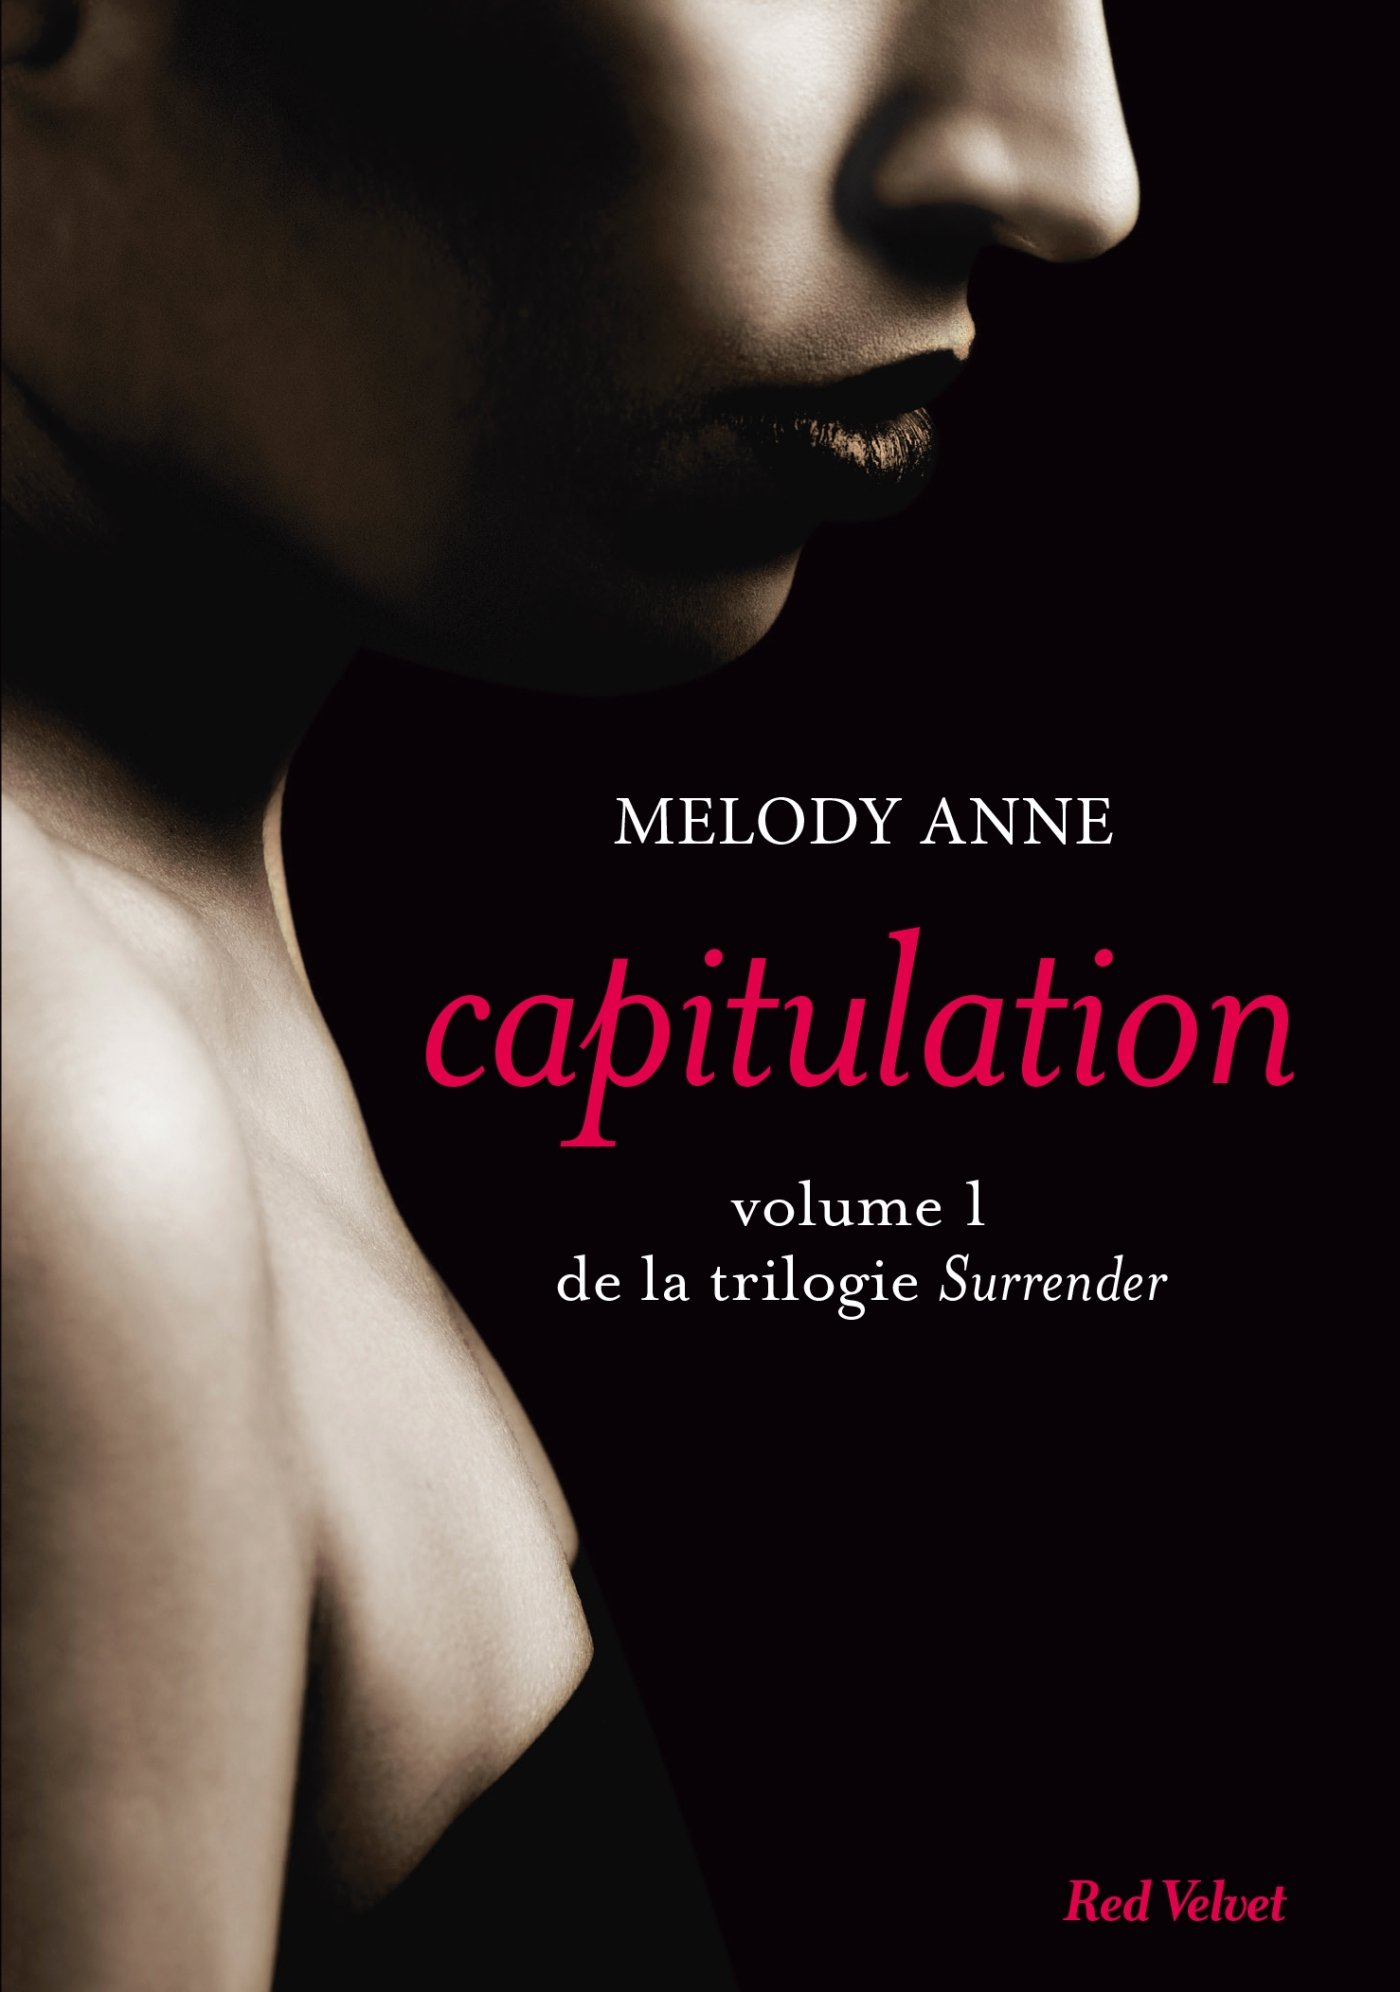 Surrender - Volume 1 : Capitulation de Melody Anne  711aNy5kOcL